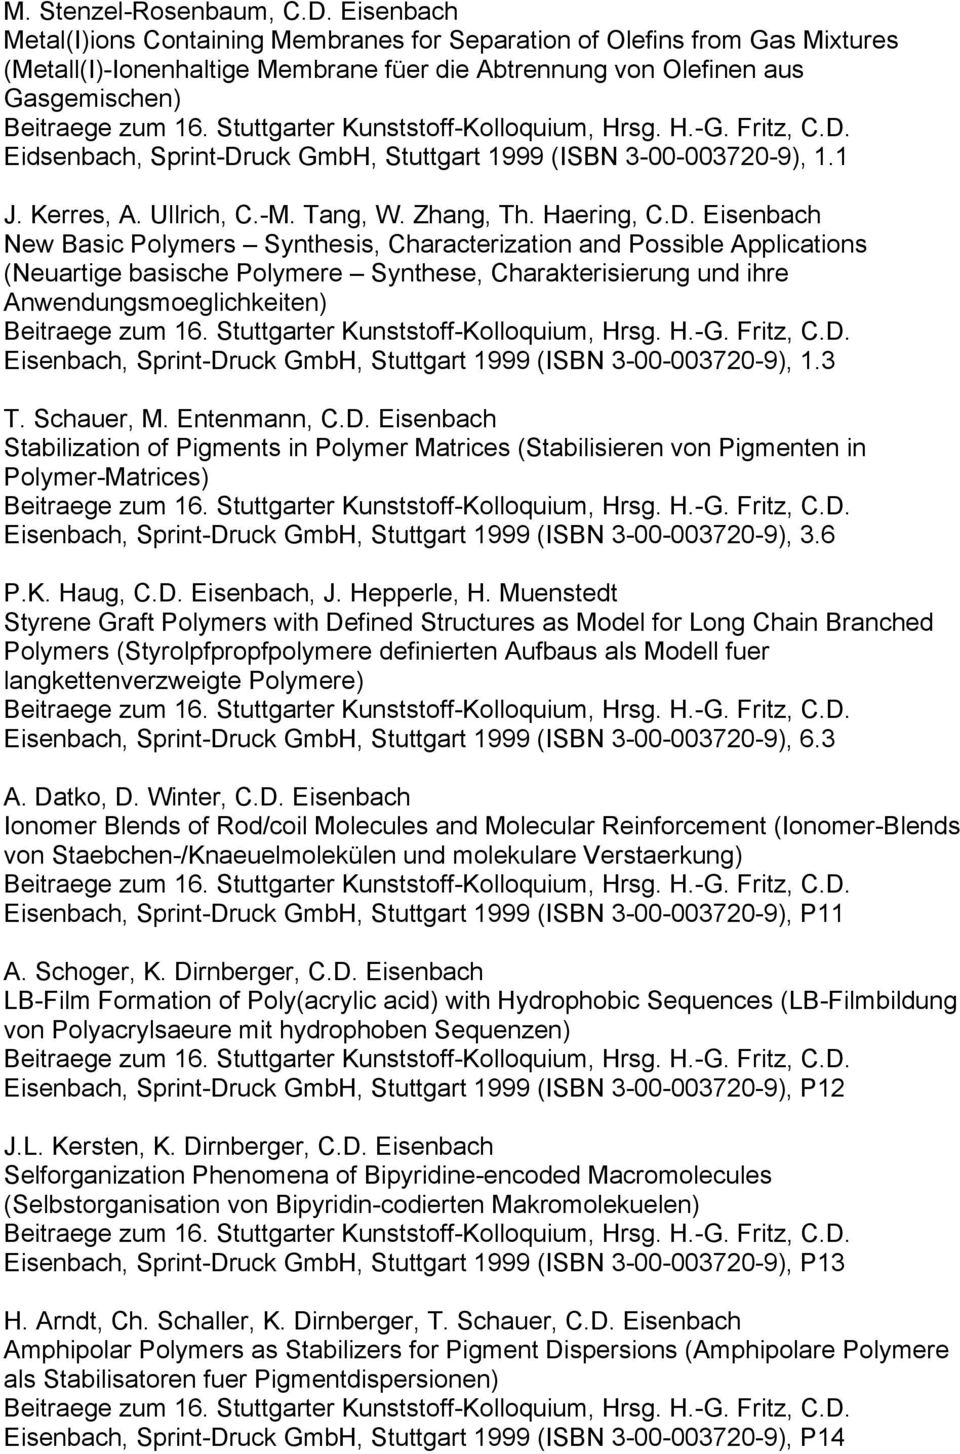 Haering, New Basic Polymers Synthesis, Characterization and Possible Applications (Neuartige basische Polymere Synthese, Charakterisierung und ihre Anwendungsmoeglichkeiten) Beitraege zum 16.